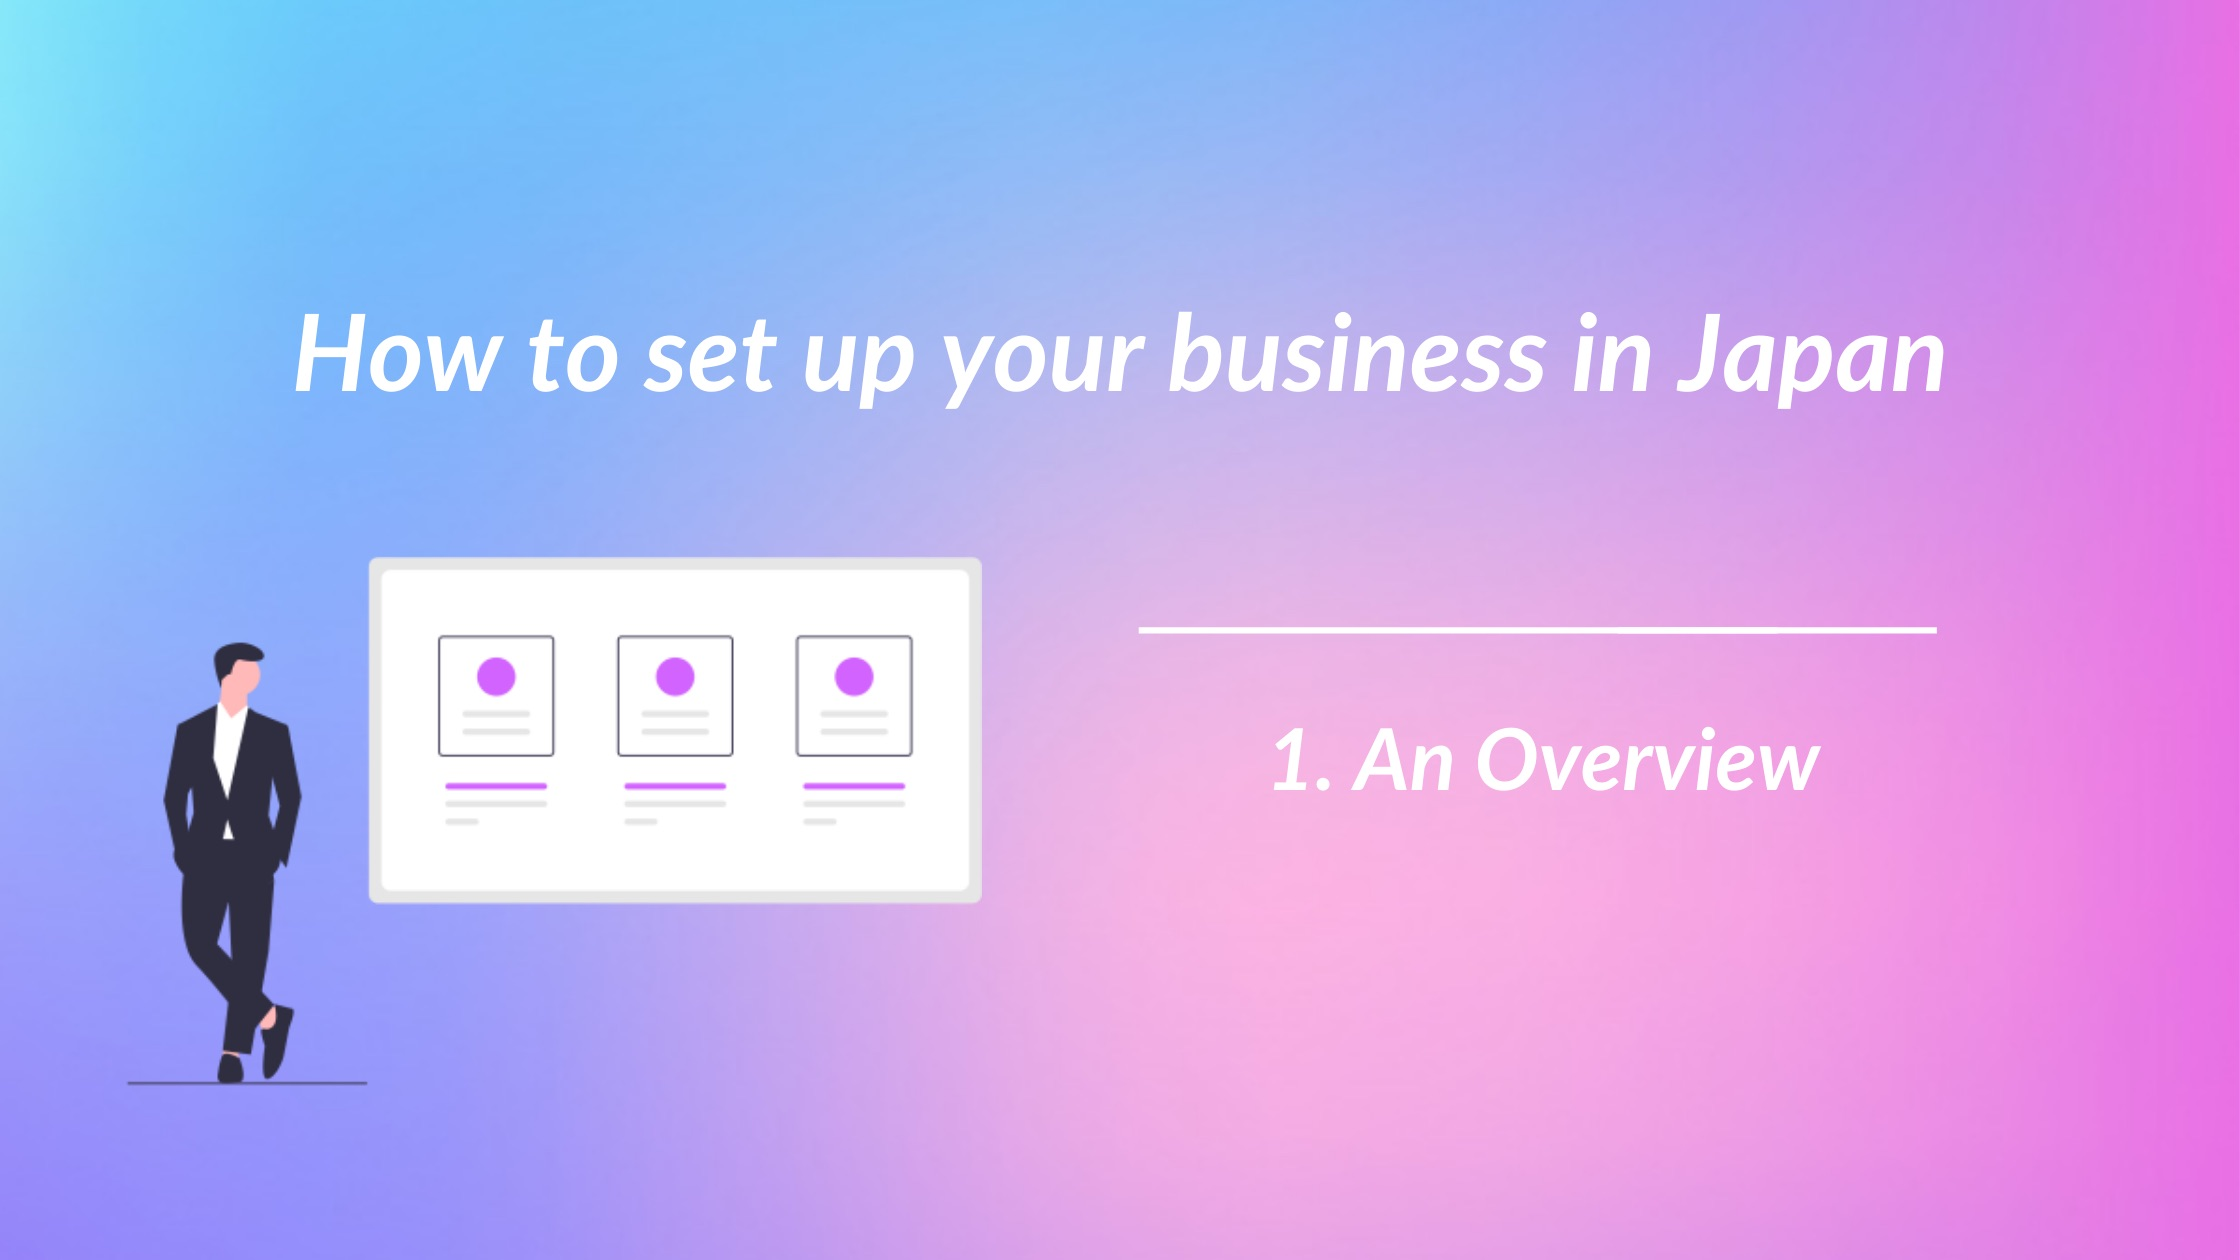 1. Business Startup Overview